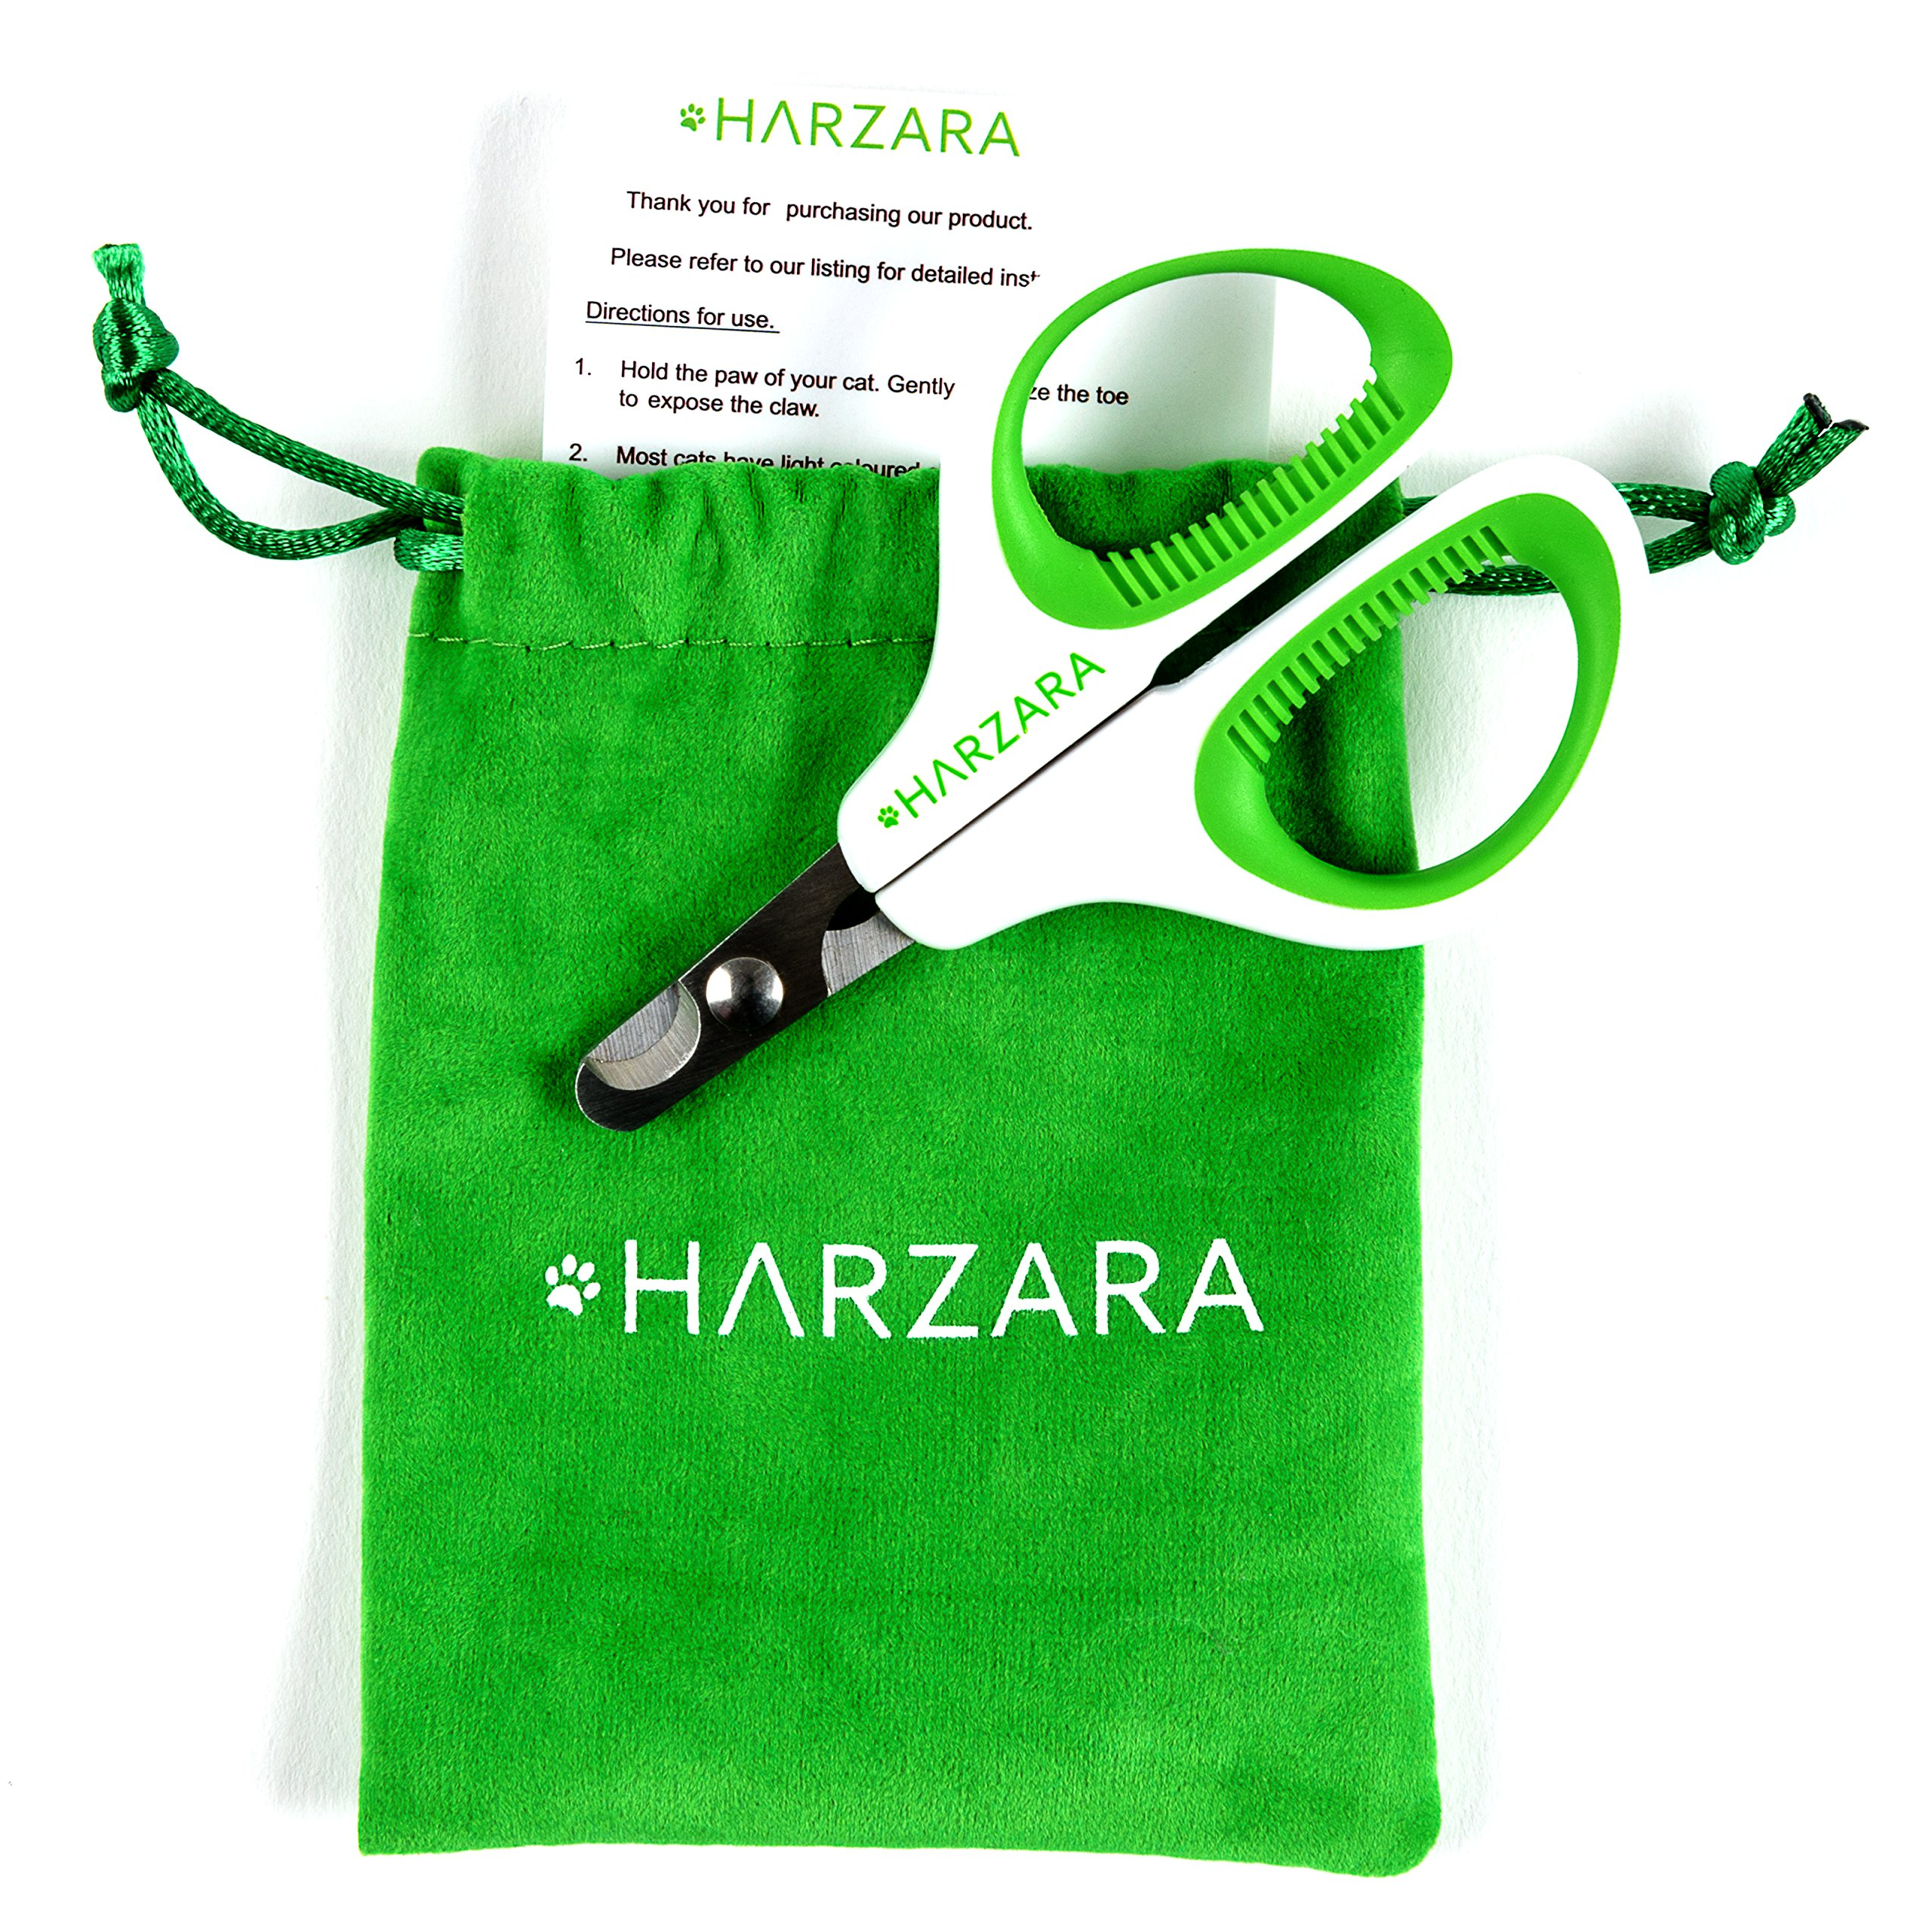 Harzara Professional Pet Nail Clippers Best for a Cat Puppy